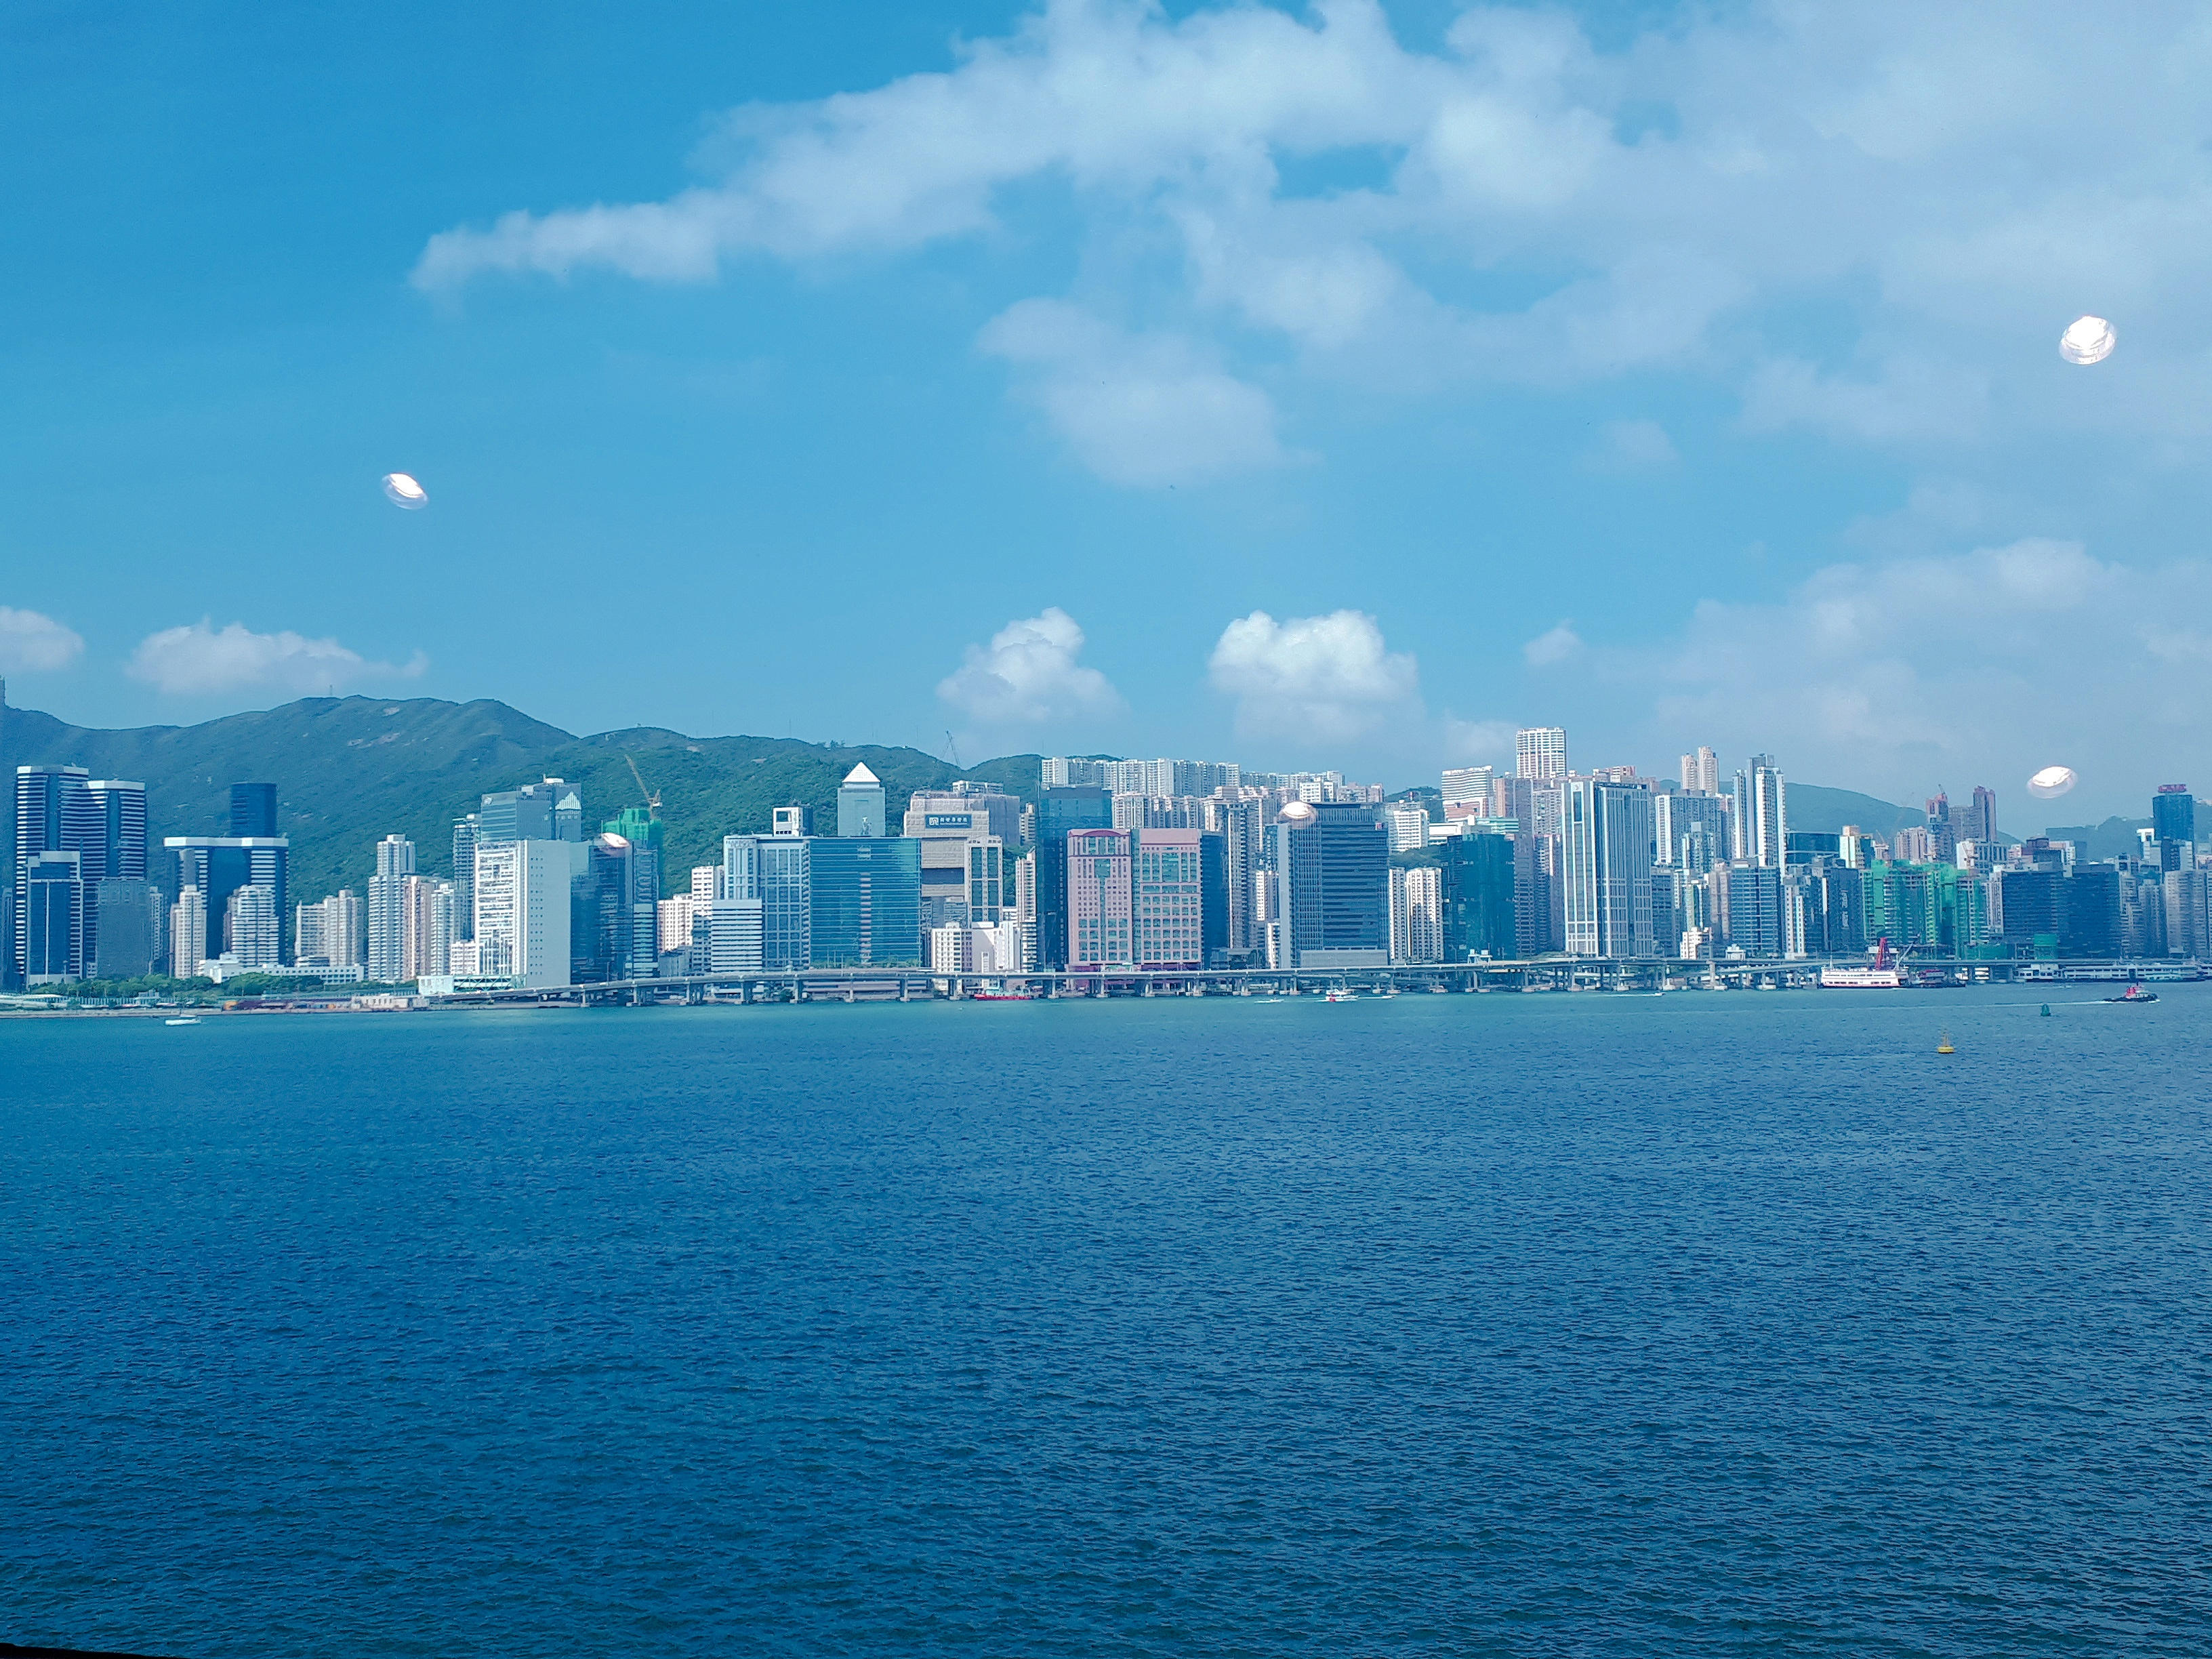 HK daytime overview